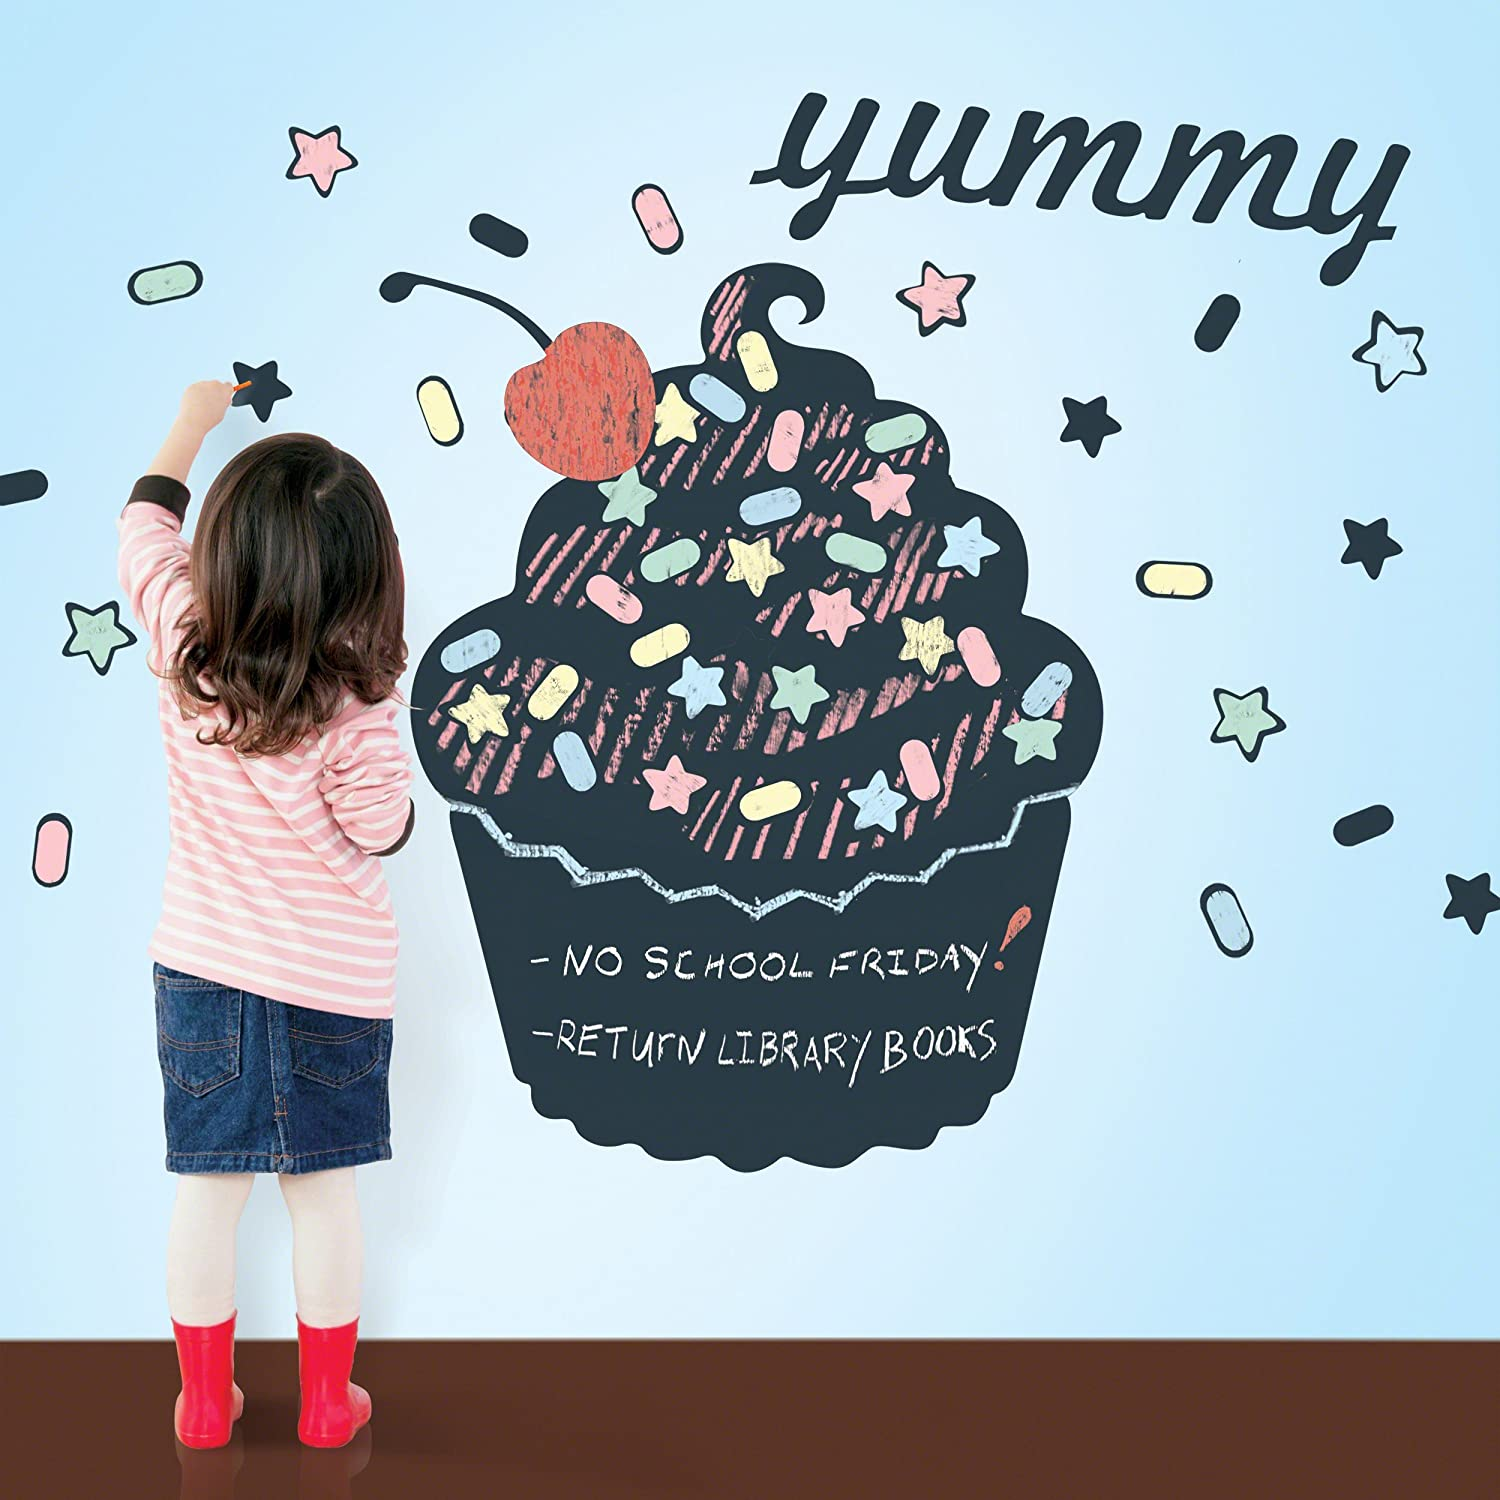 Amazon.com WallCandy Arts Chalkboard Wall Decal Cupcake with Sprinkles Baby  sc 1 st  Amazon.com & Amazon.com: WallCandy Arts Chalkboard Wall Decal Cupcake with ...